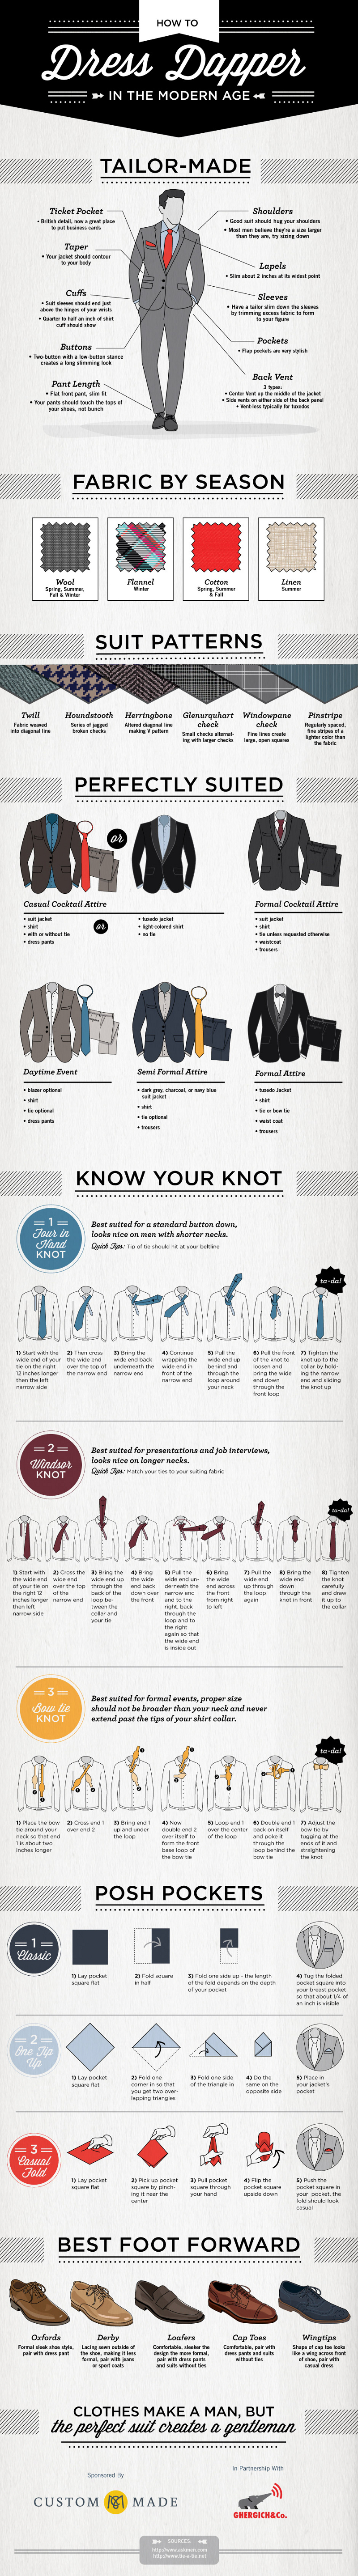 Guide-to-Dressing-Sharp